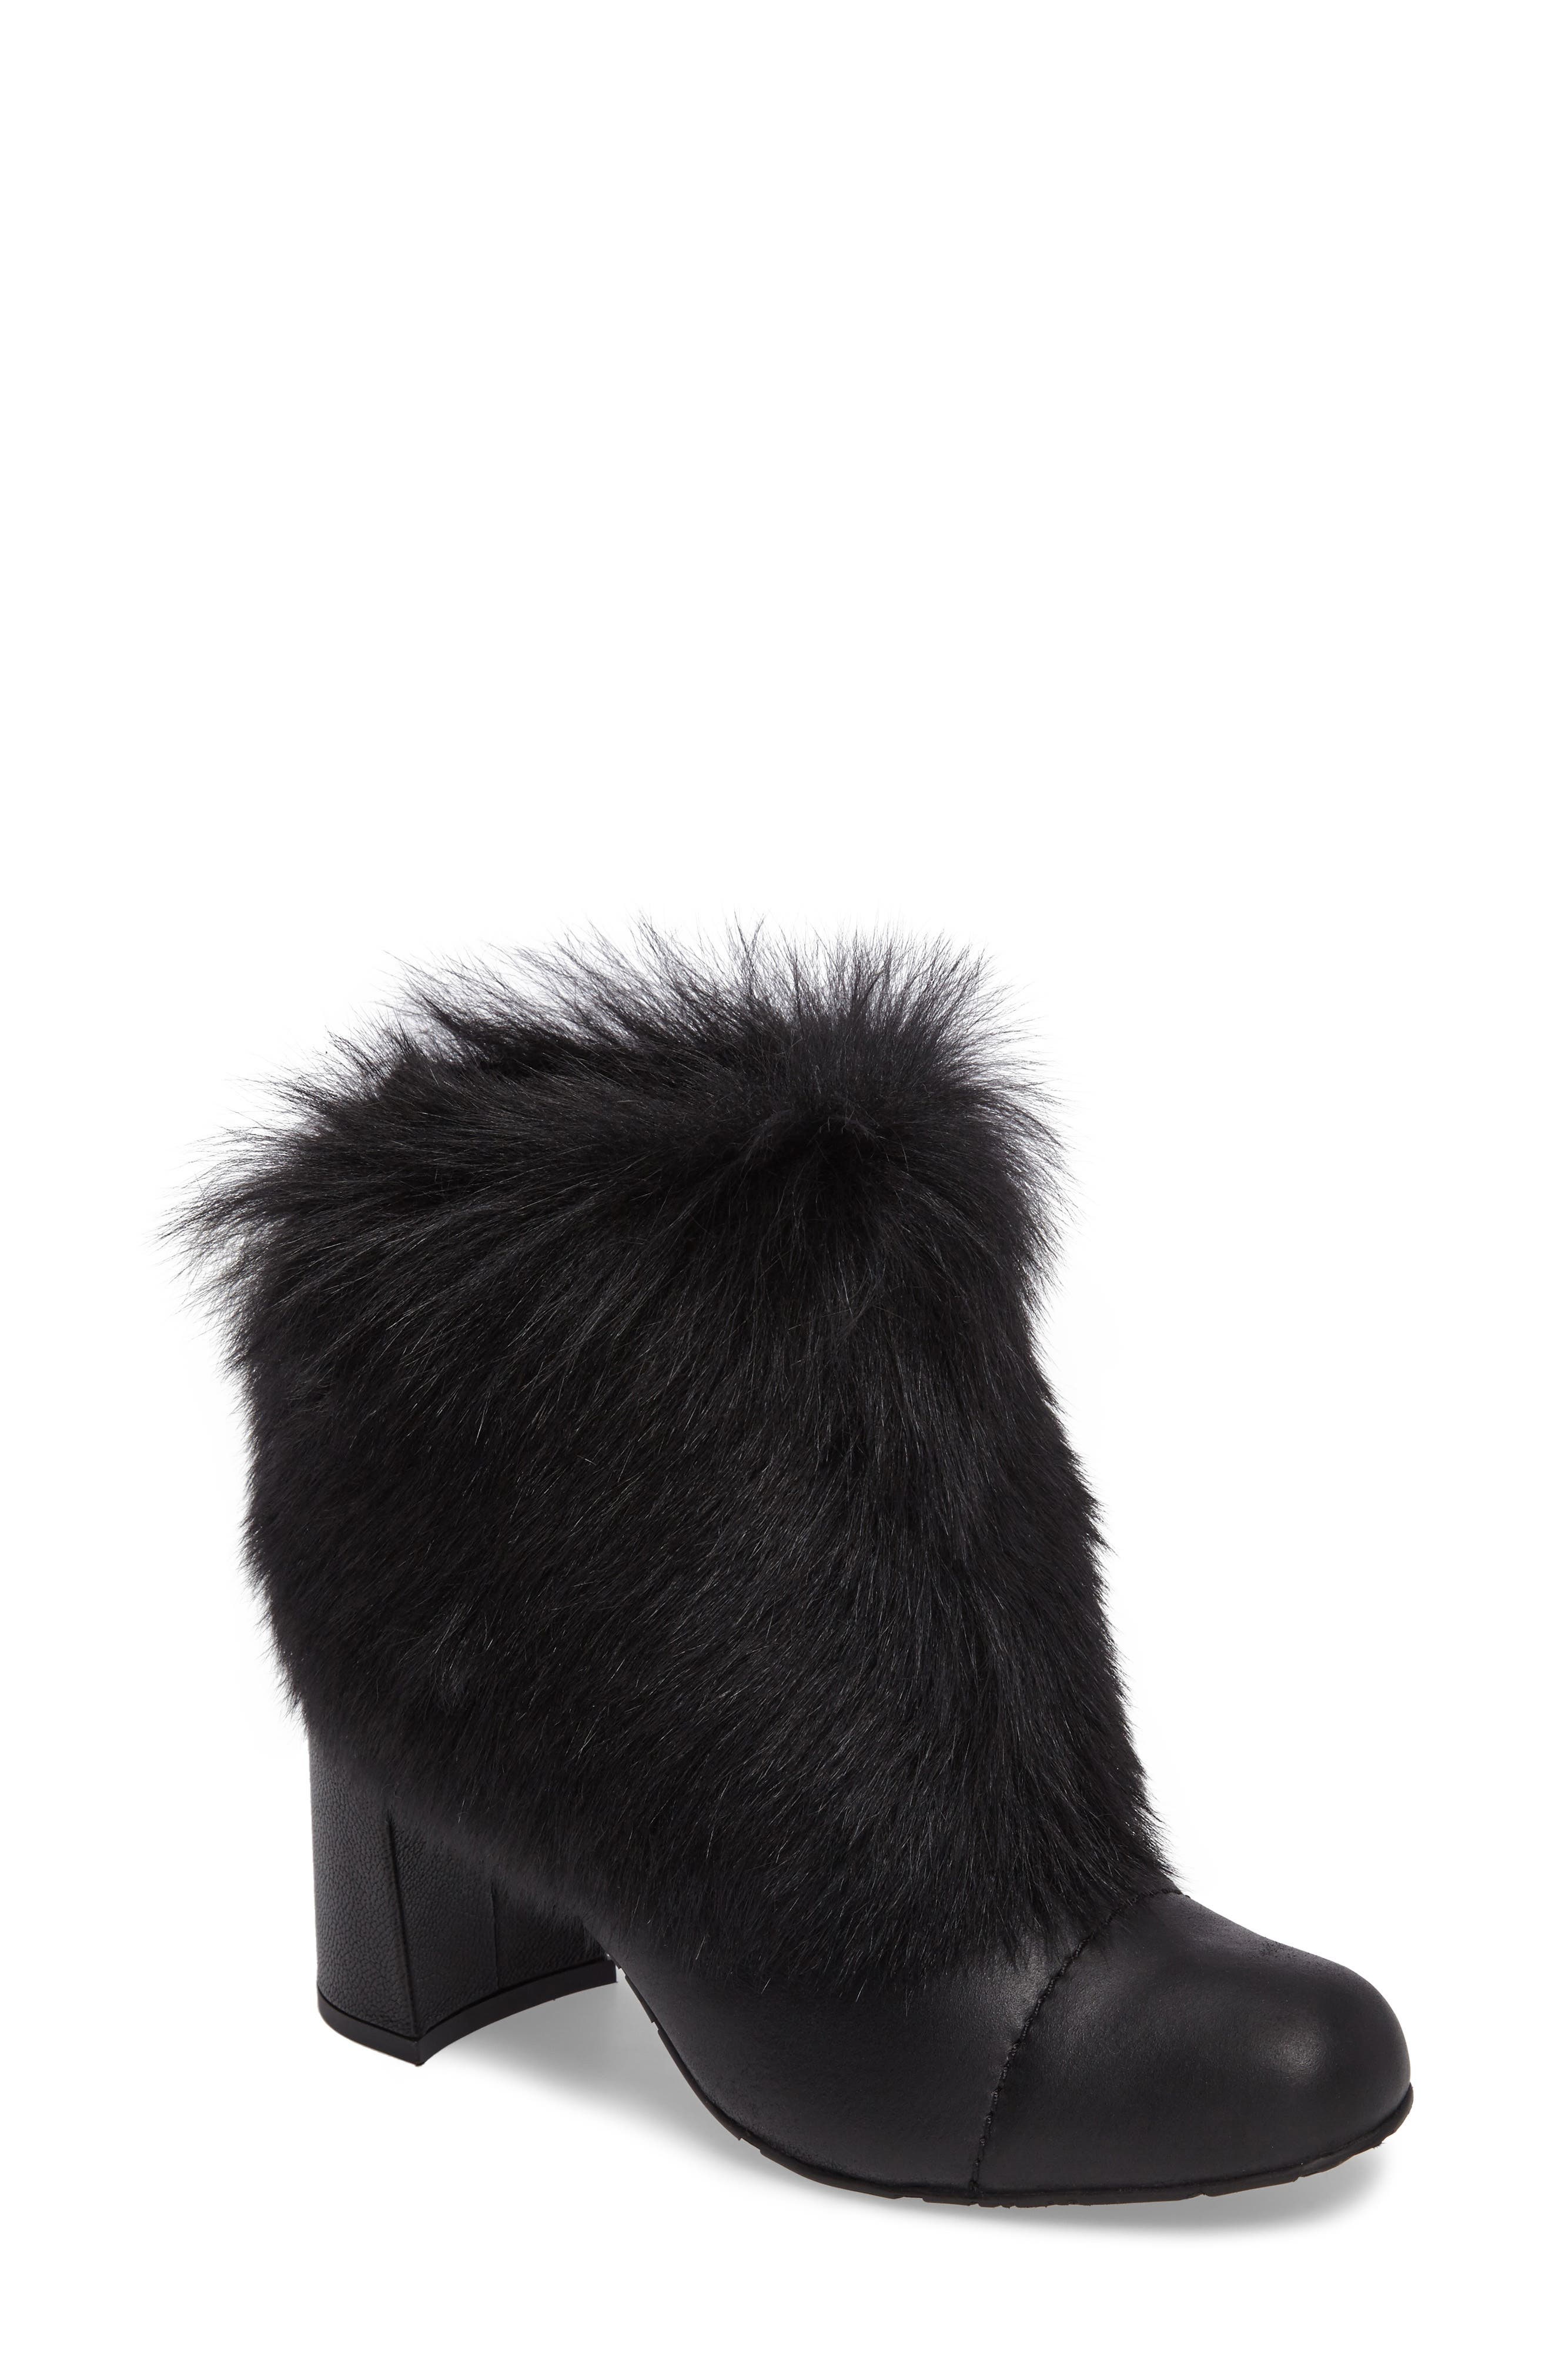 Woka Genuine Shearling Bootie,                             Main thumbnail 1, color,                             001